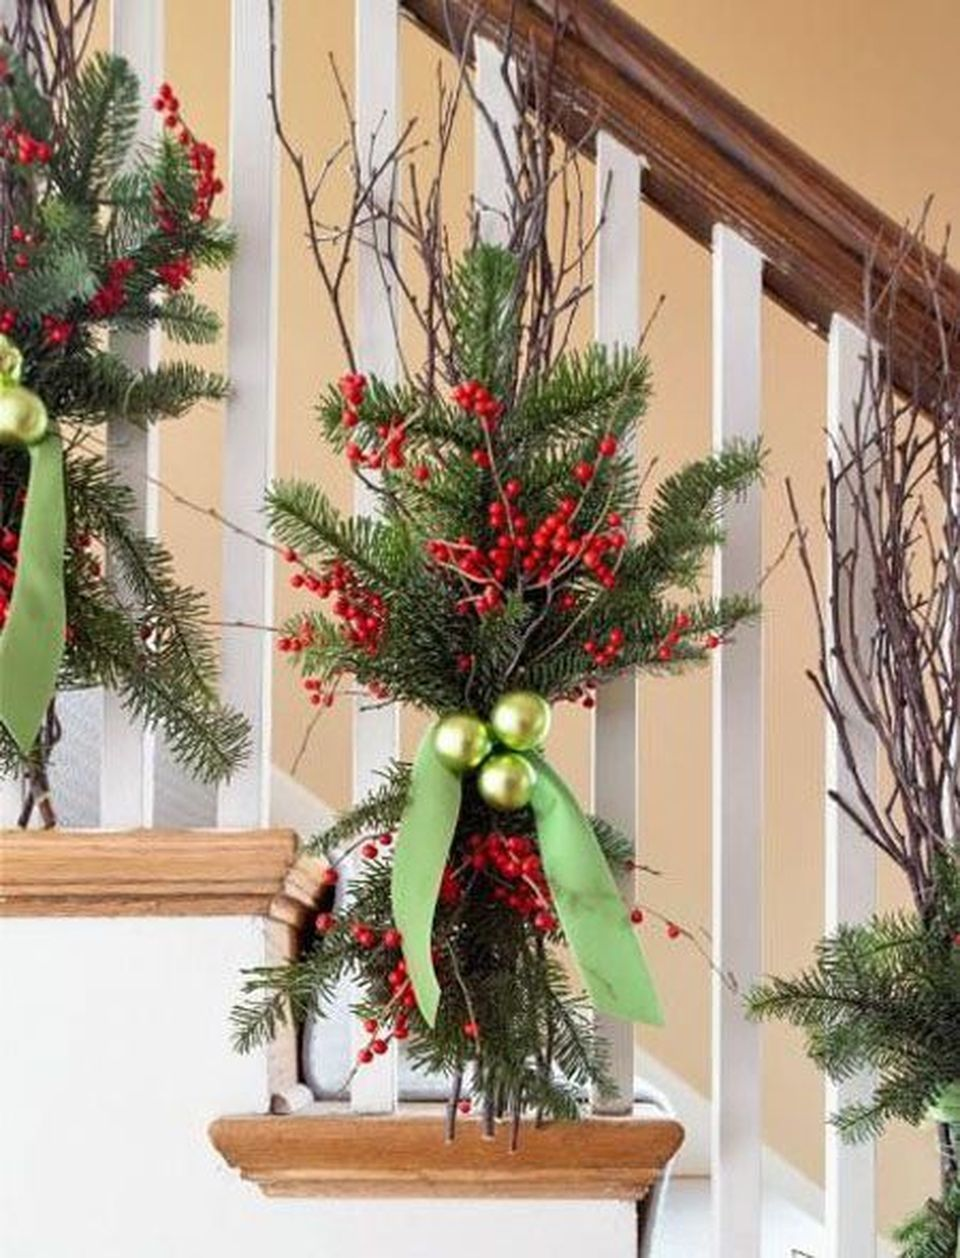 Christmas Decorations Ideas for the Home 32